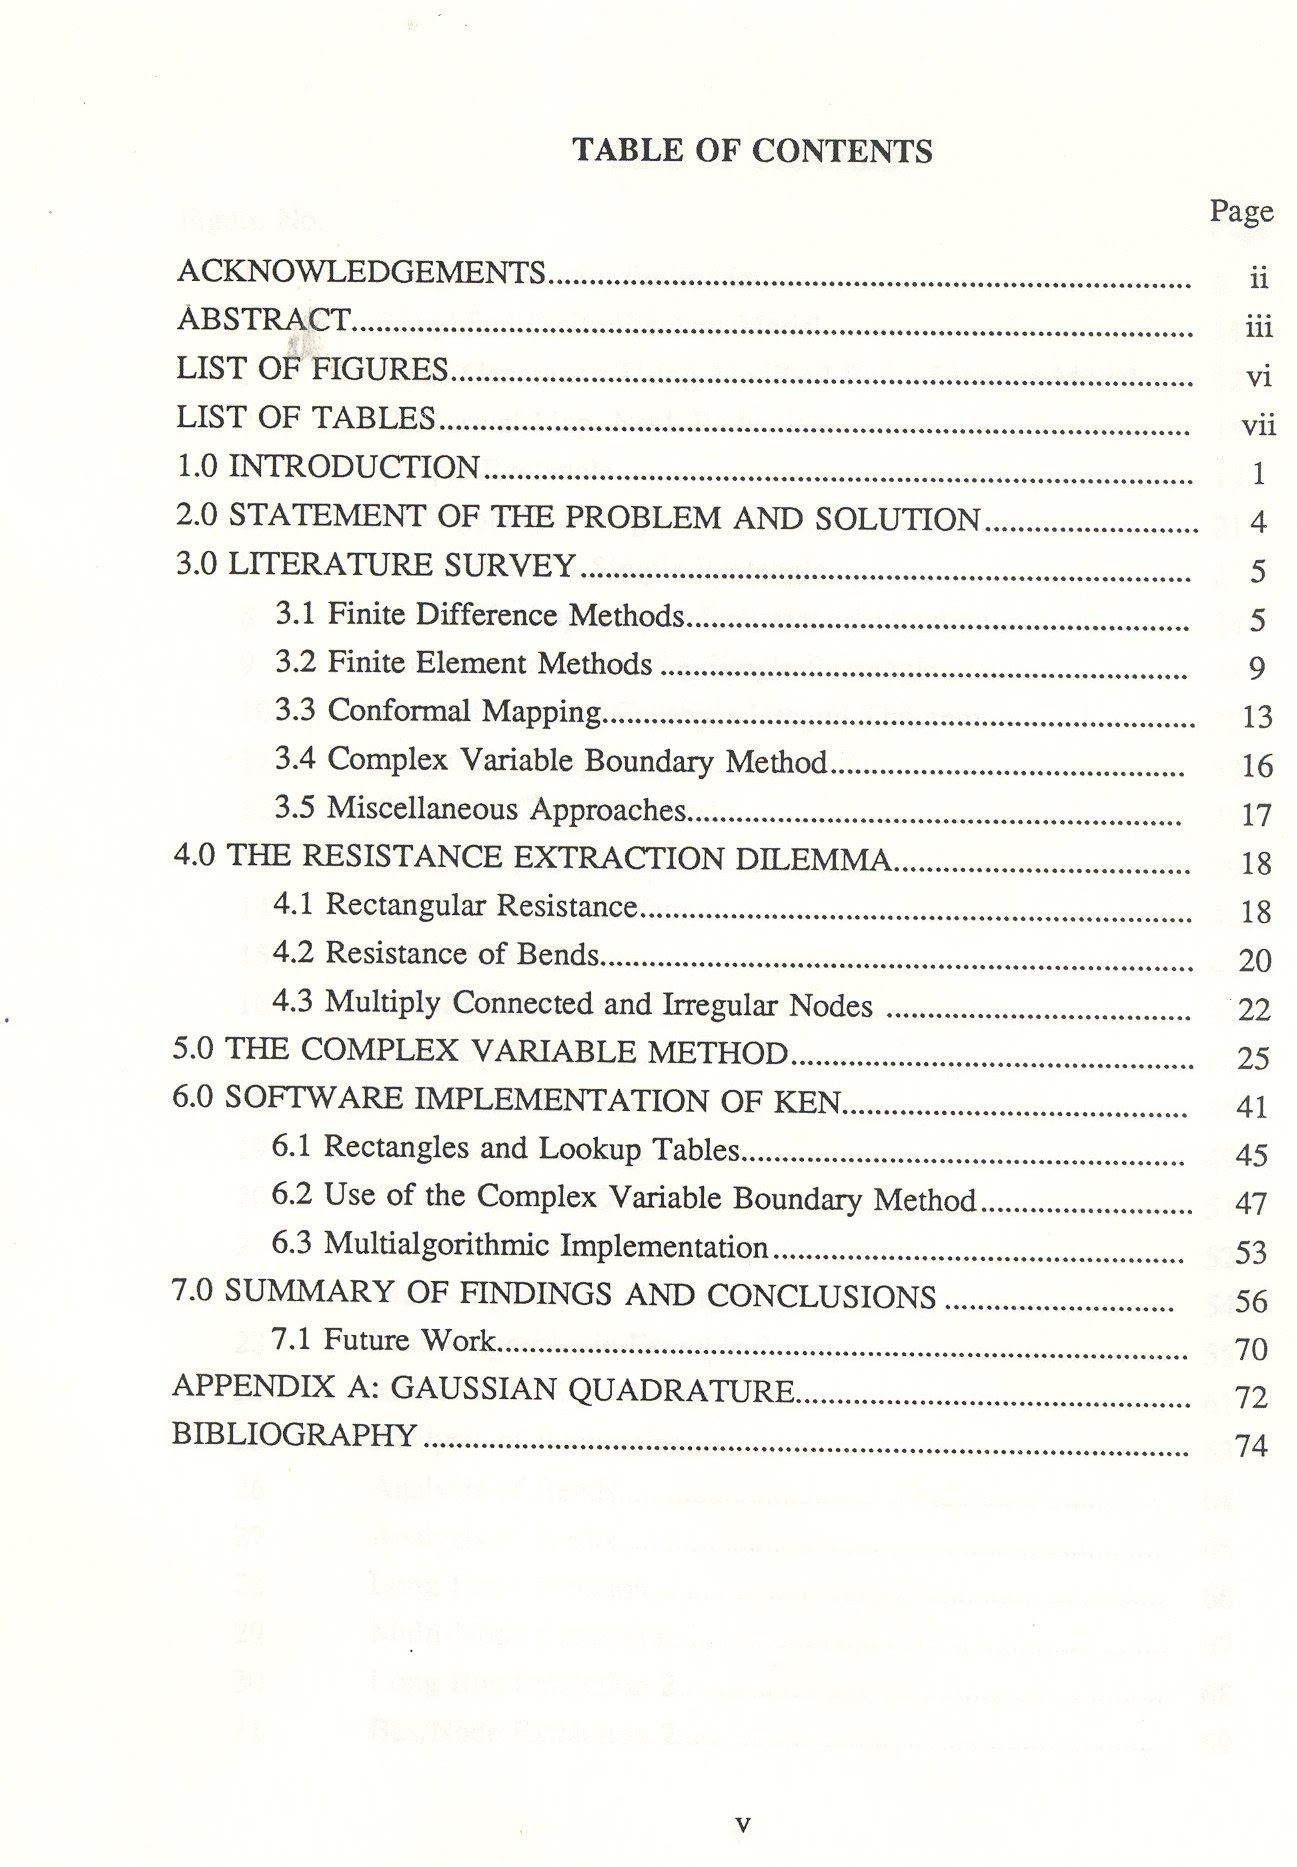 Master Thesis Table Of Contents Sample - Thesis Title Ideas For College